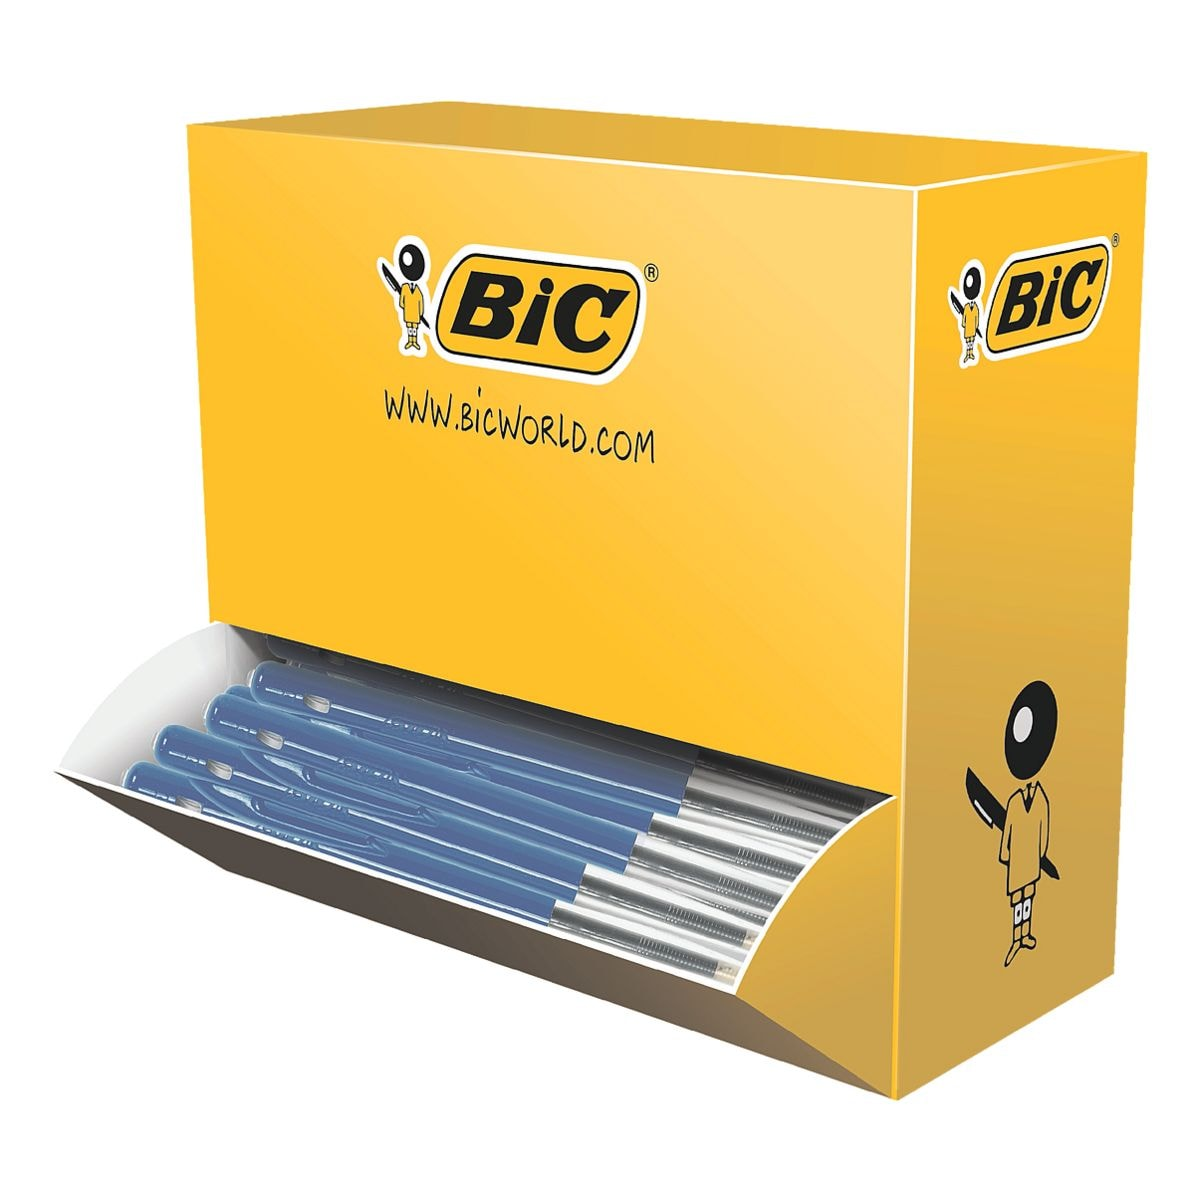 100x Stylo-bille BIC M10, convient aux documents officiels